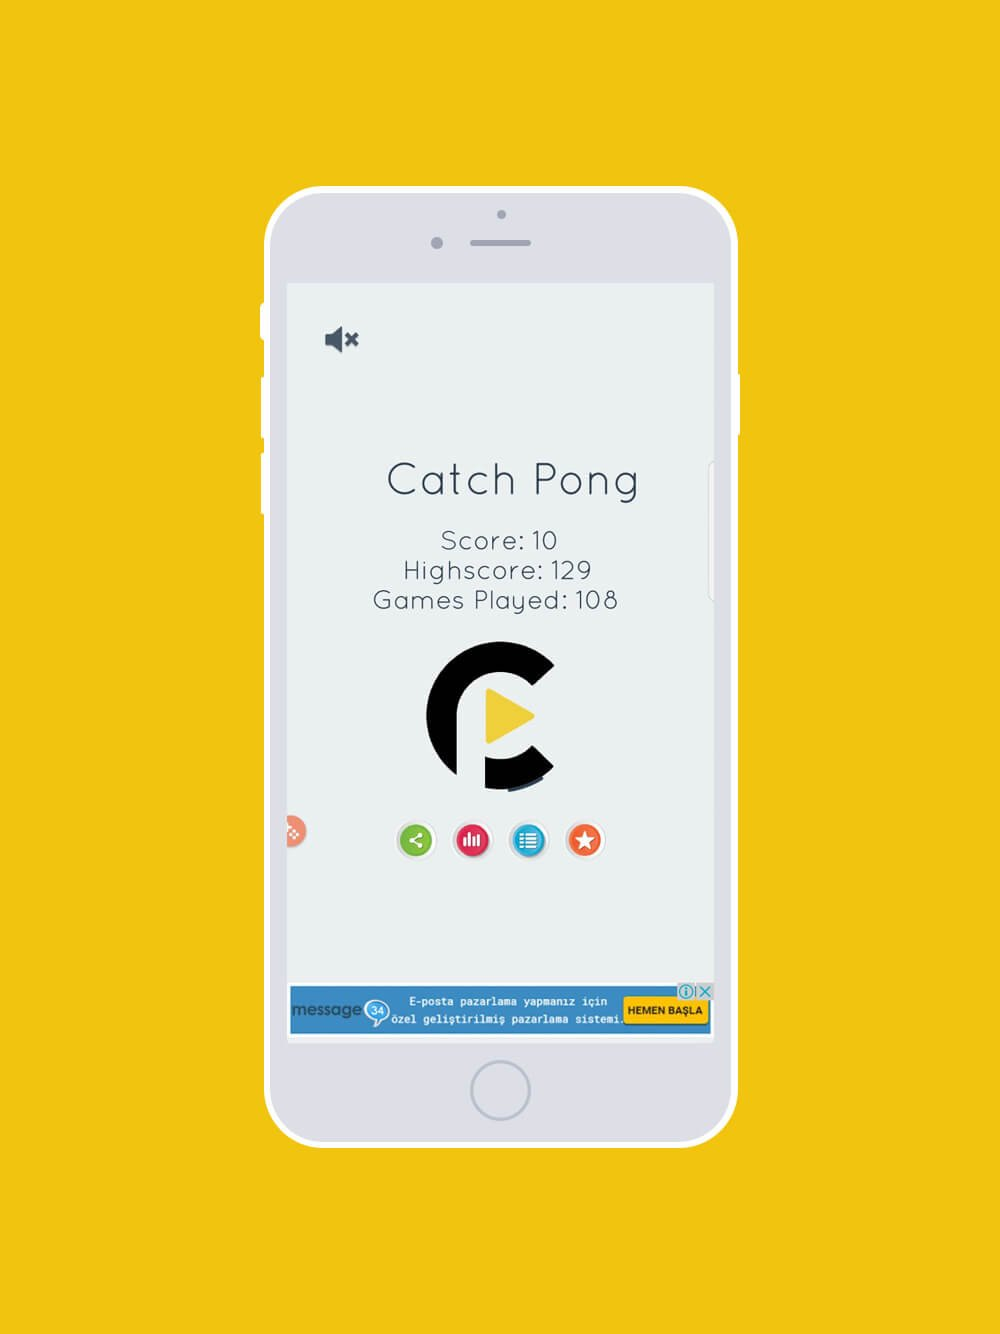 Catch Pong